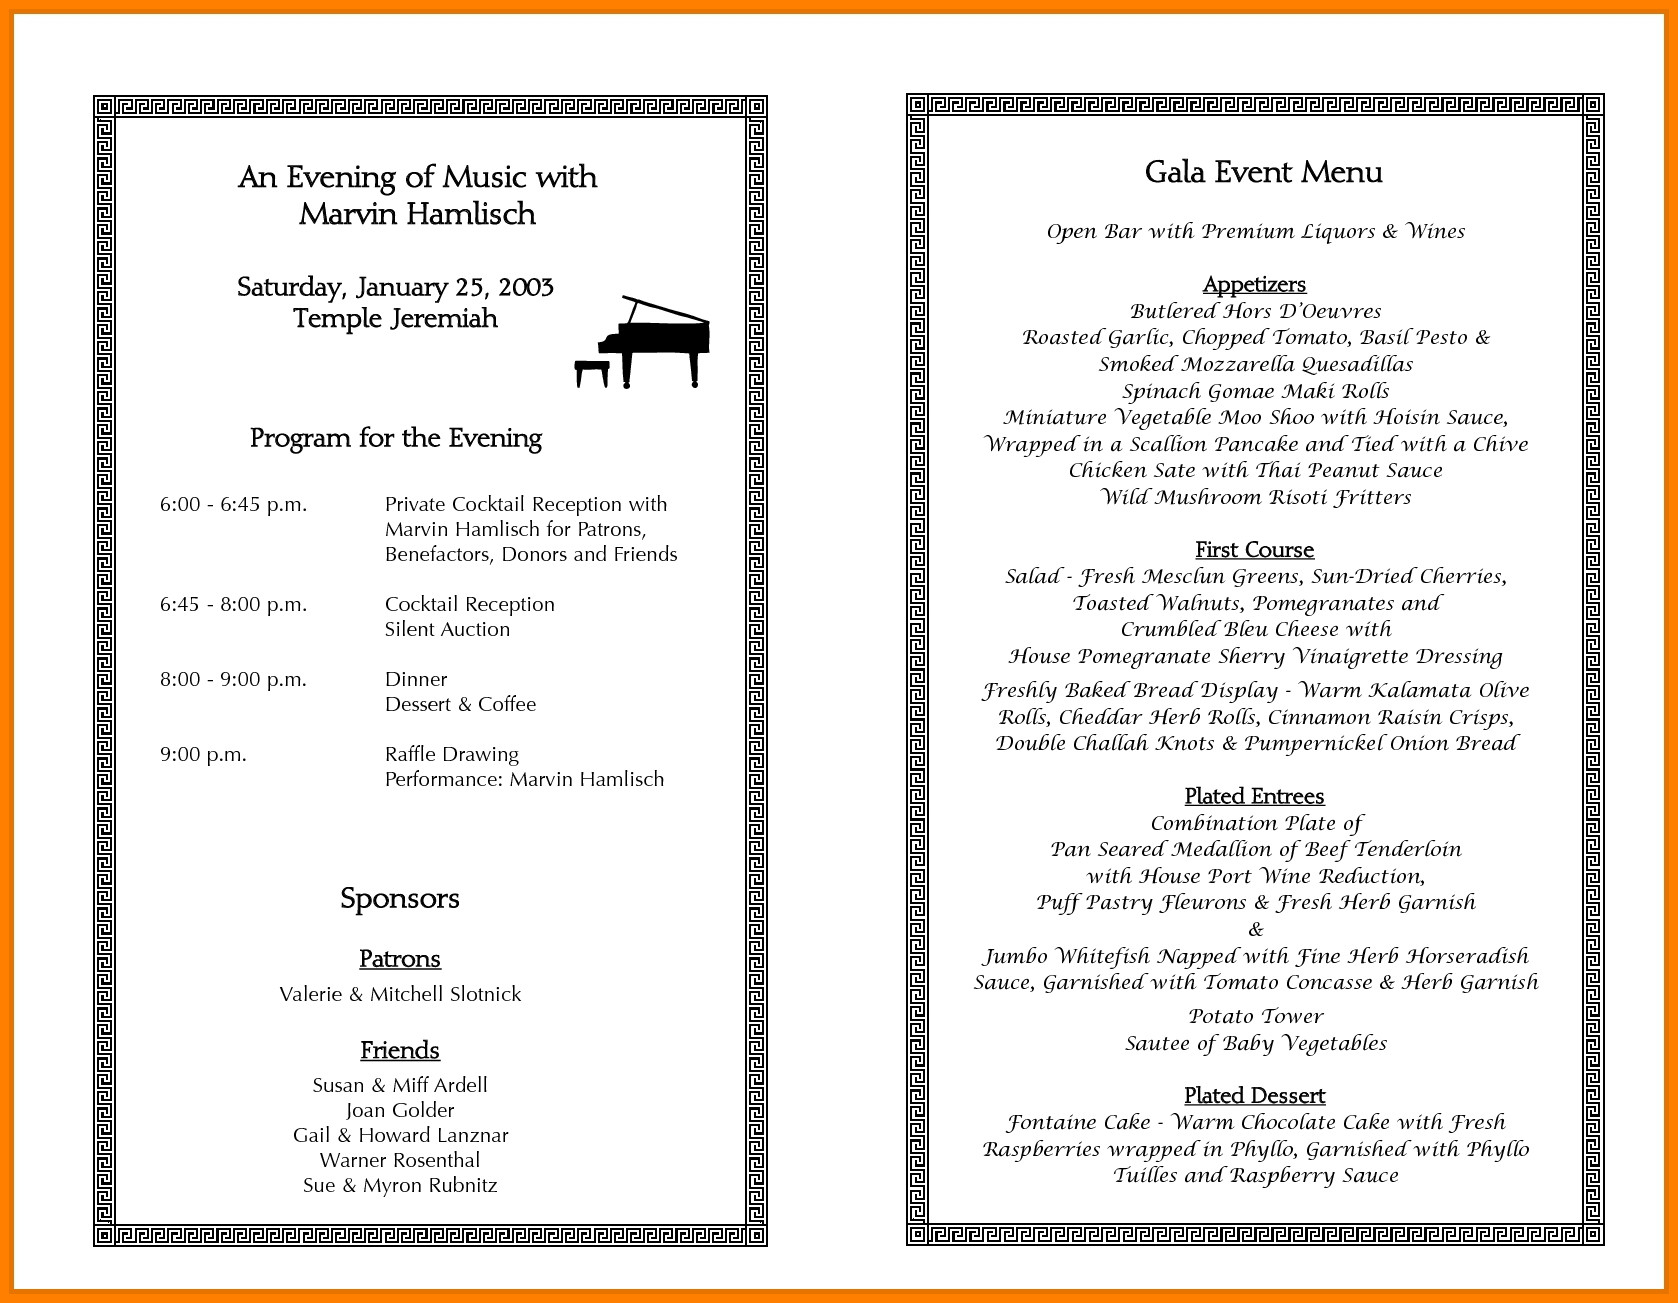 024 Printable Event Program Template Free Download Floss With Regard To Free Event Program Templates Word